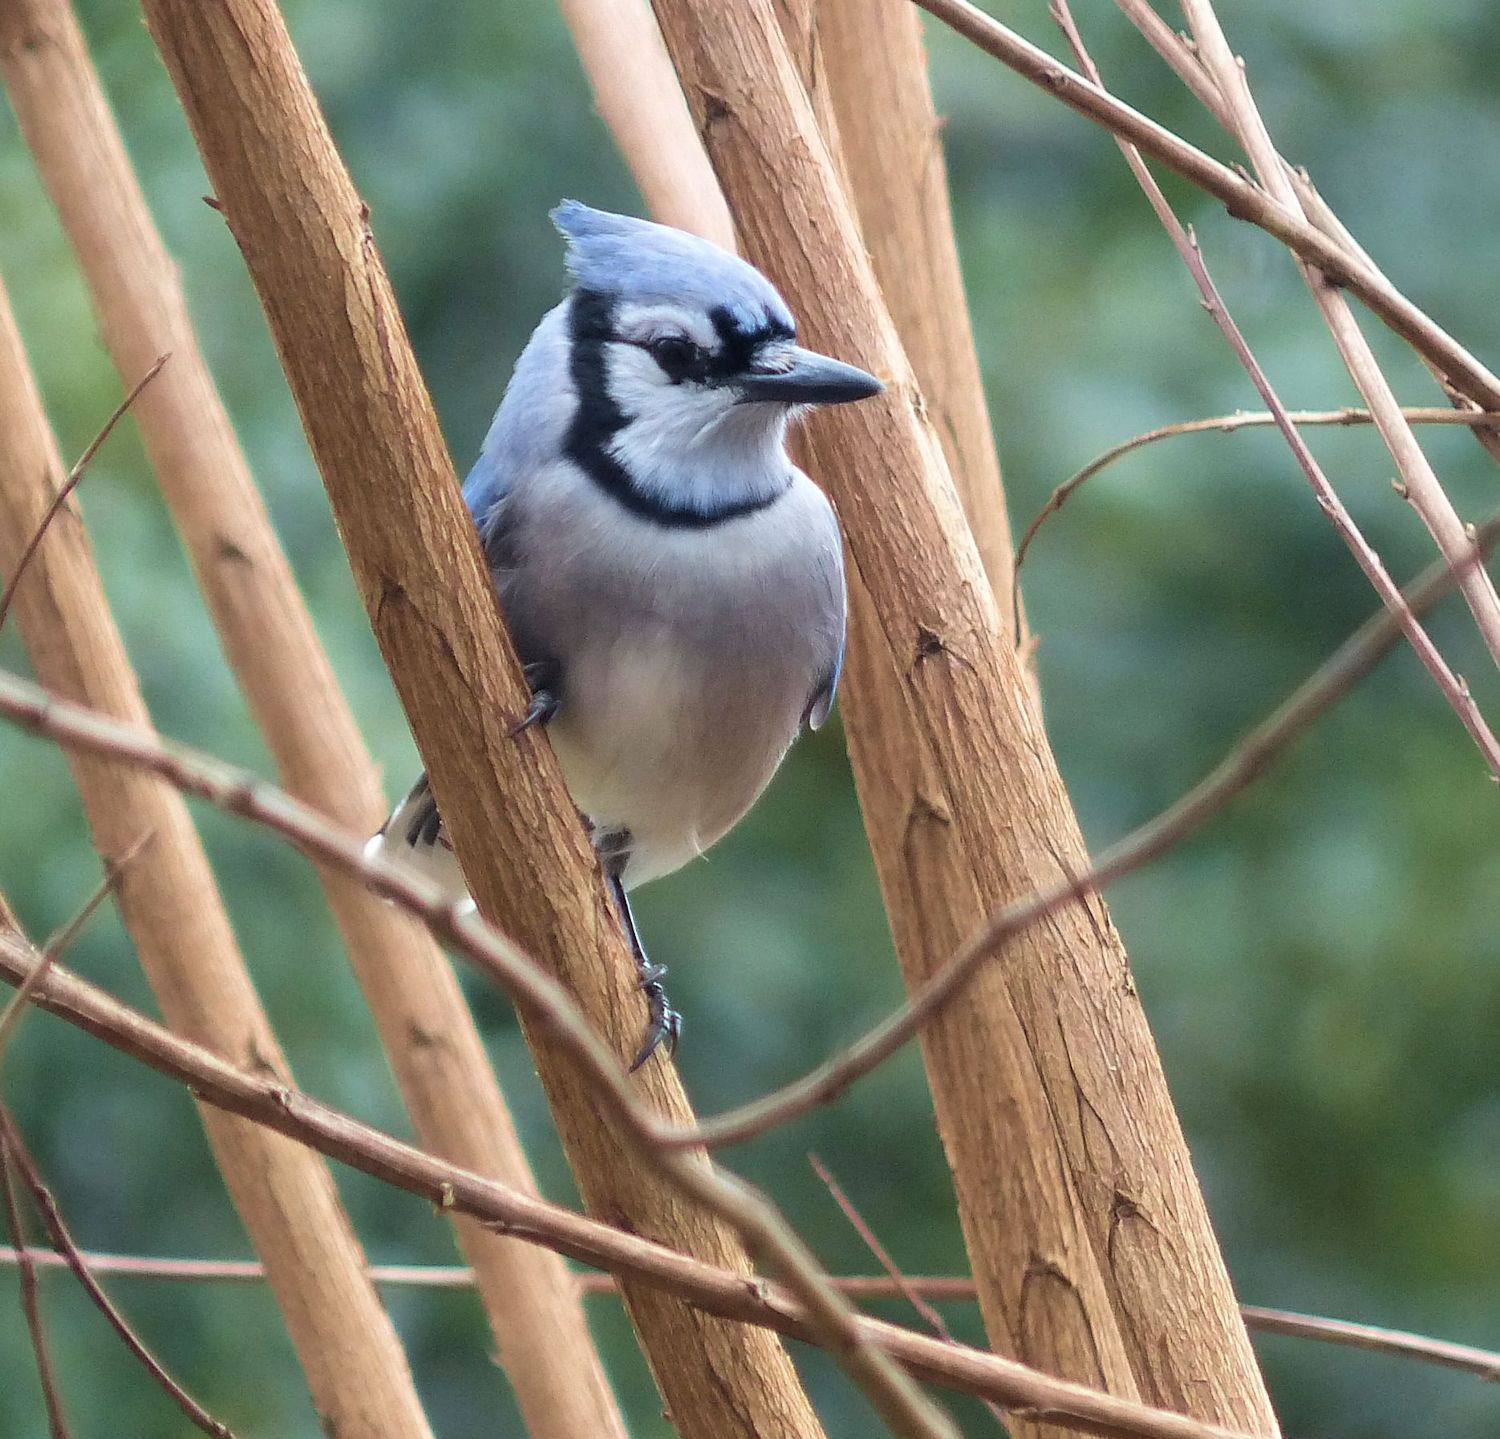 Blue Jay checking out the new restaurant